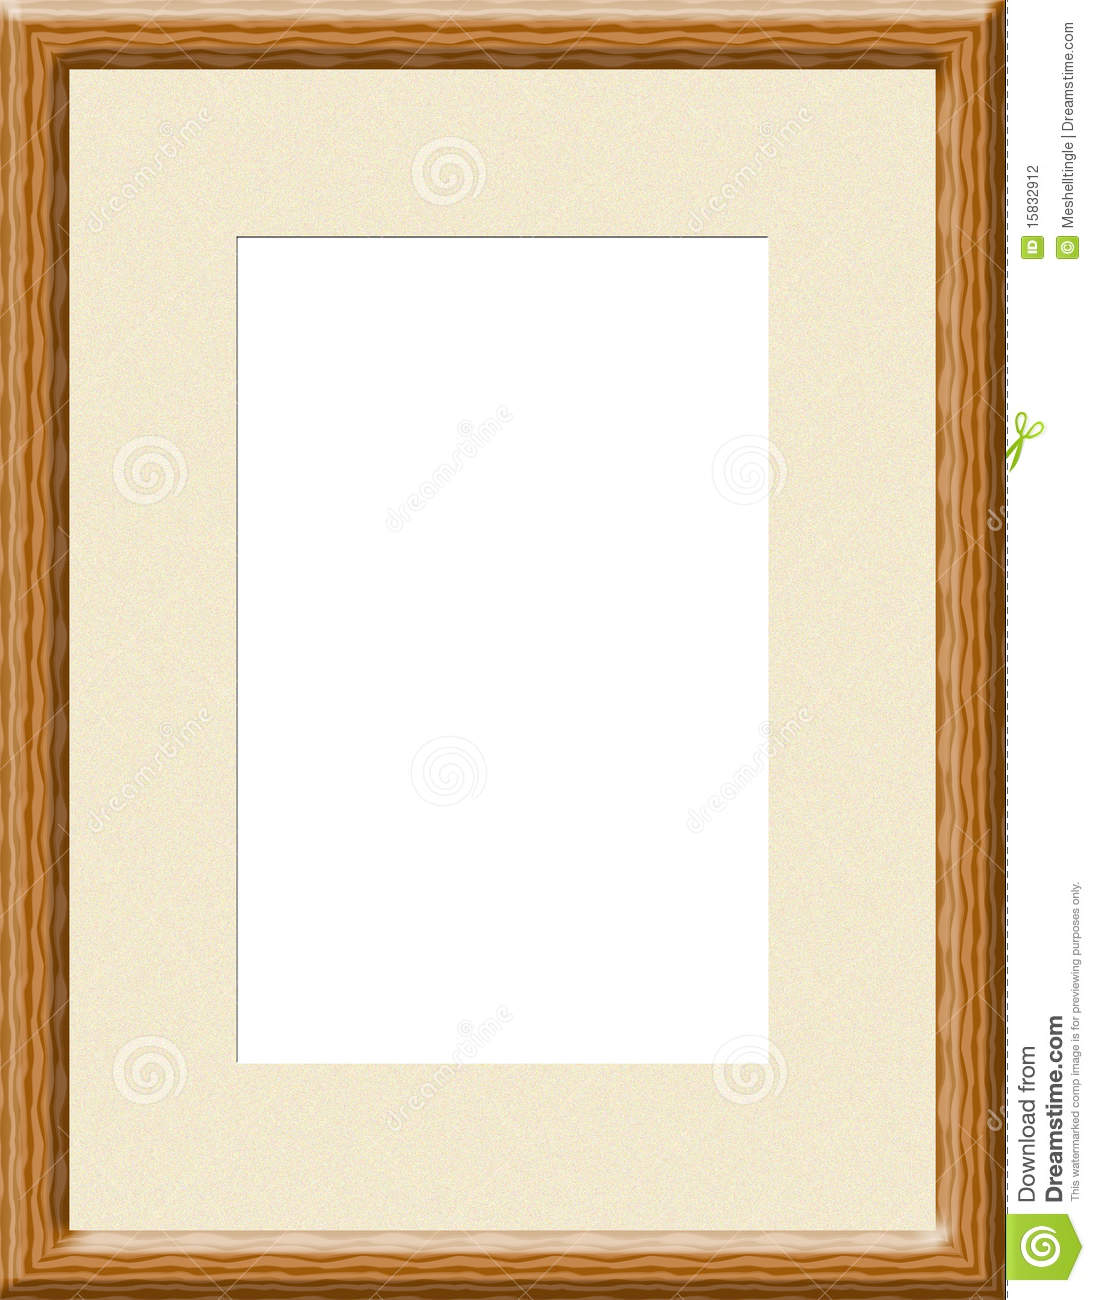 Light Brown Wooden Frame Stock Illustration Illustration Of Grain